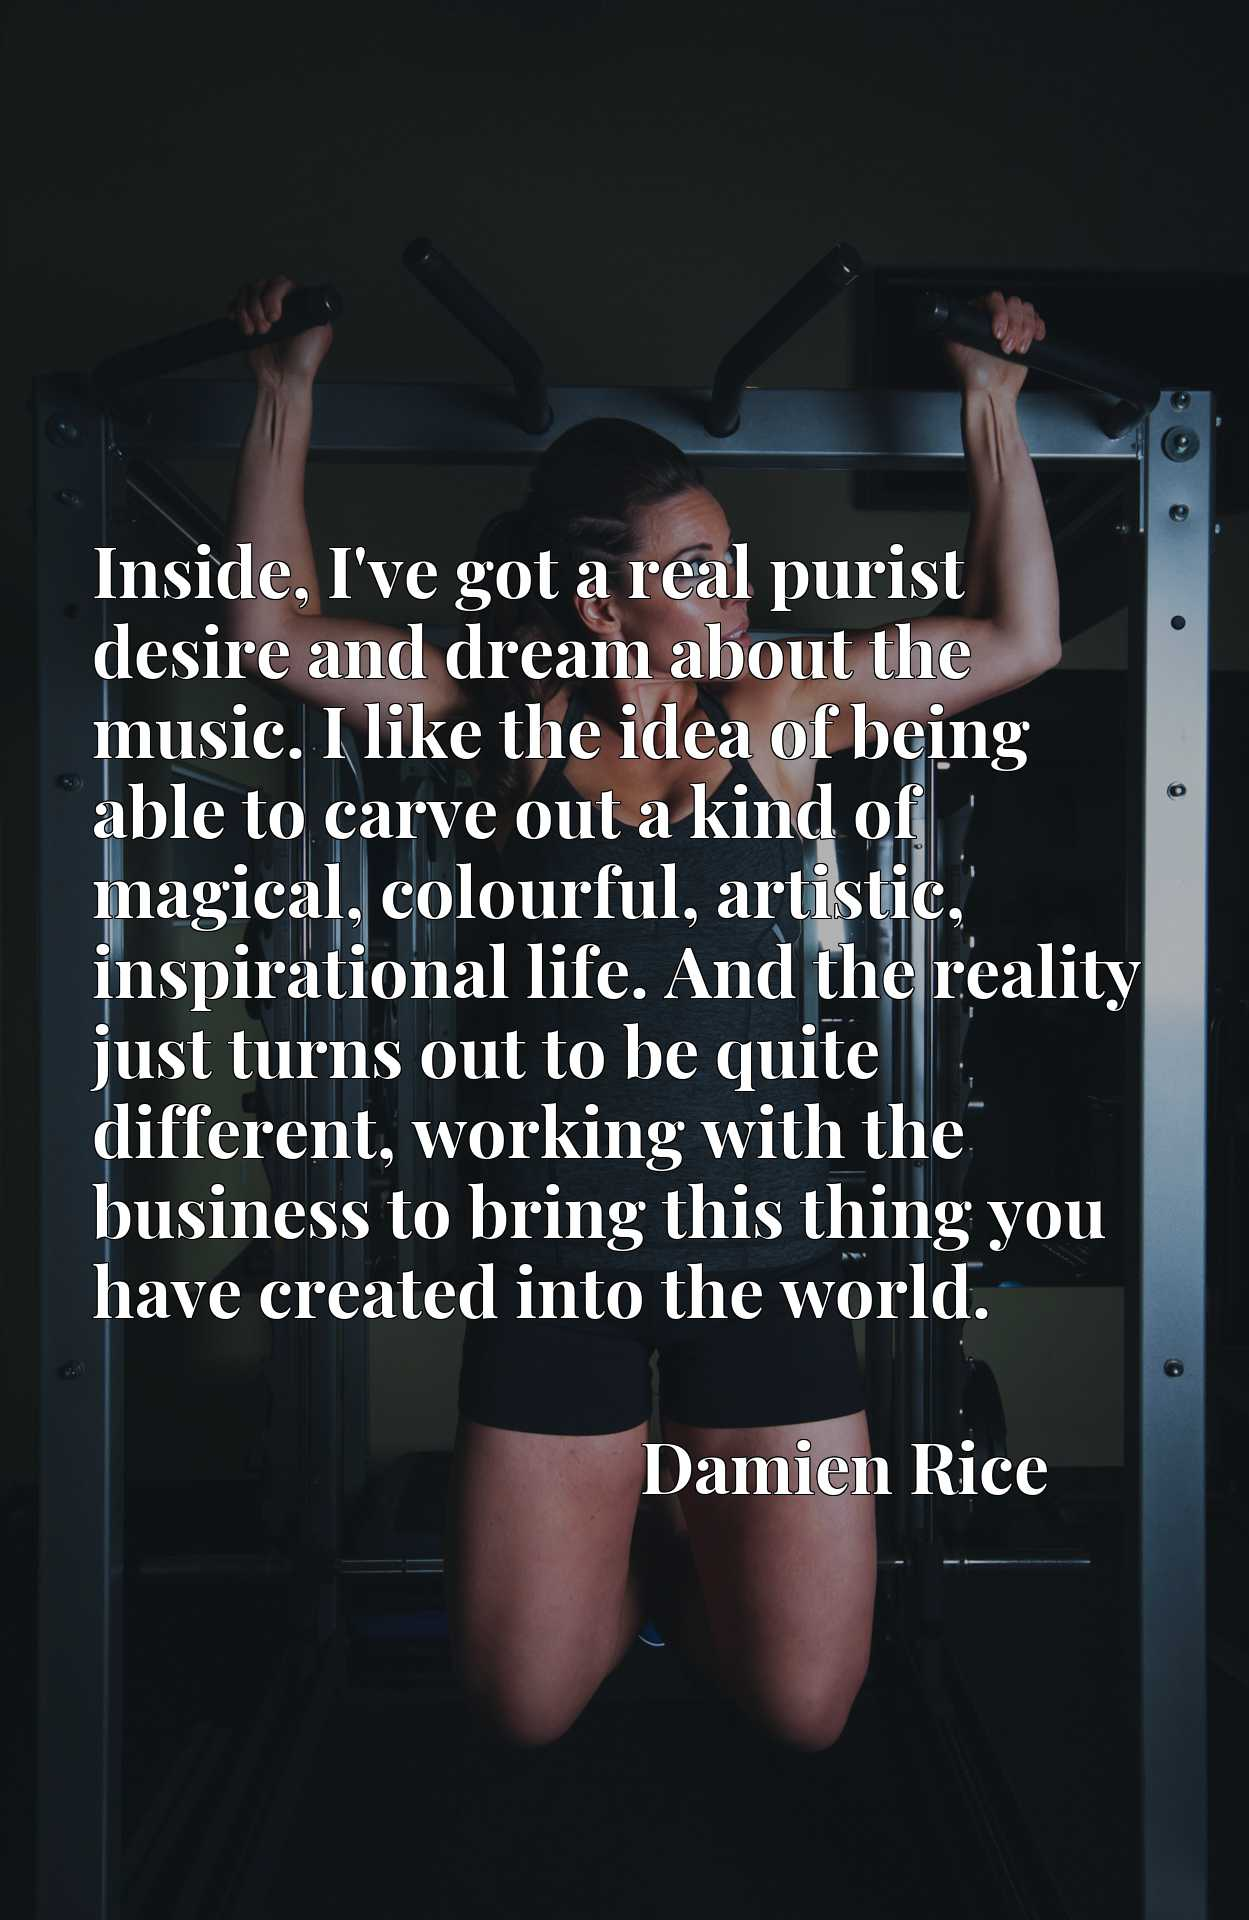 Inside, I've got a real purist desire and dream about the music. I like the idea of being able to carve out a kind of magical, colourful, artistic, inspirational life. And the reality just turns out to be quite different, working with the business to bring this thing you have created into the world.